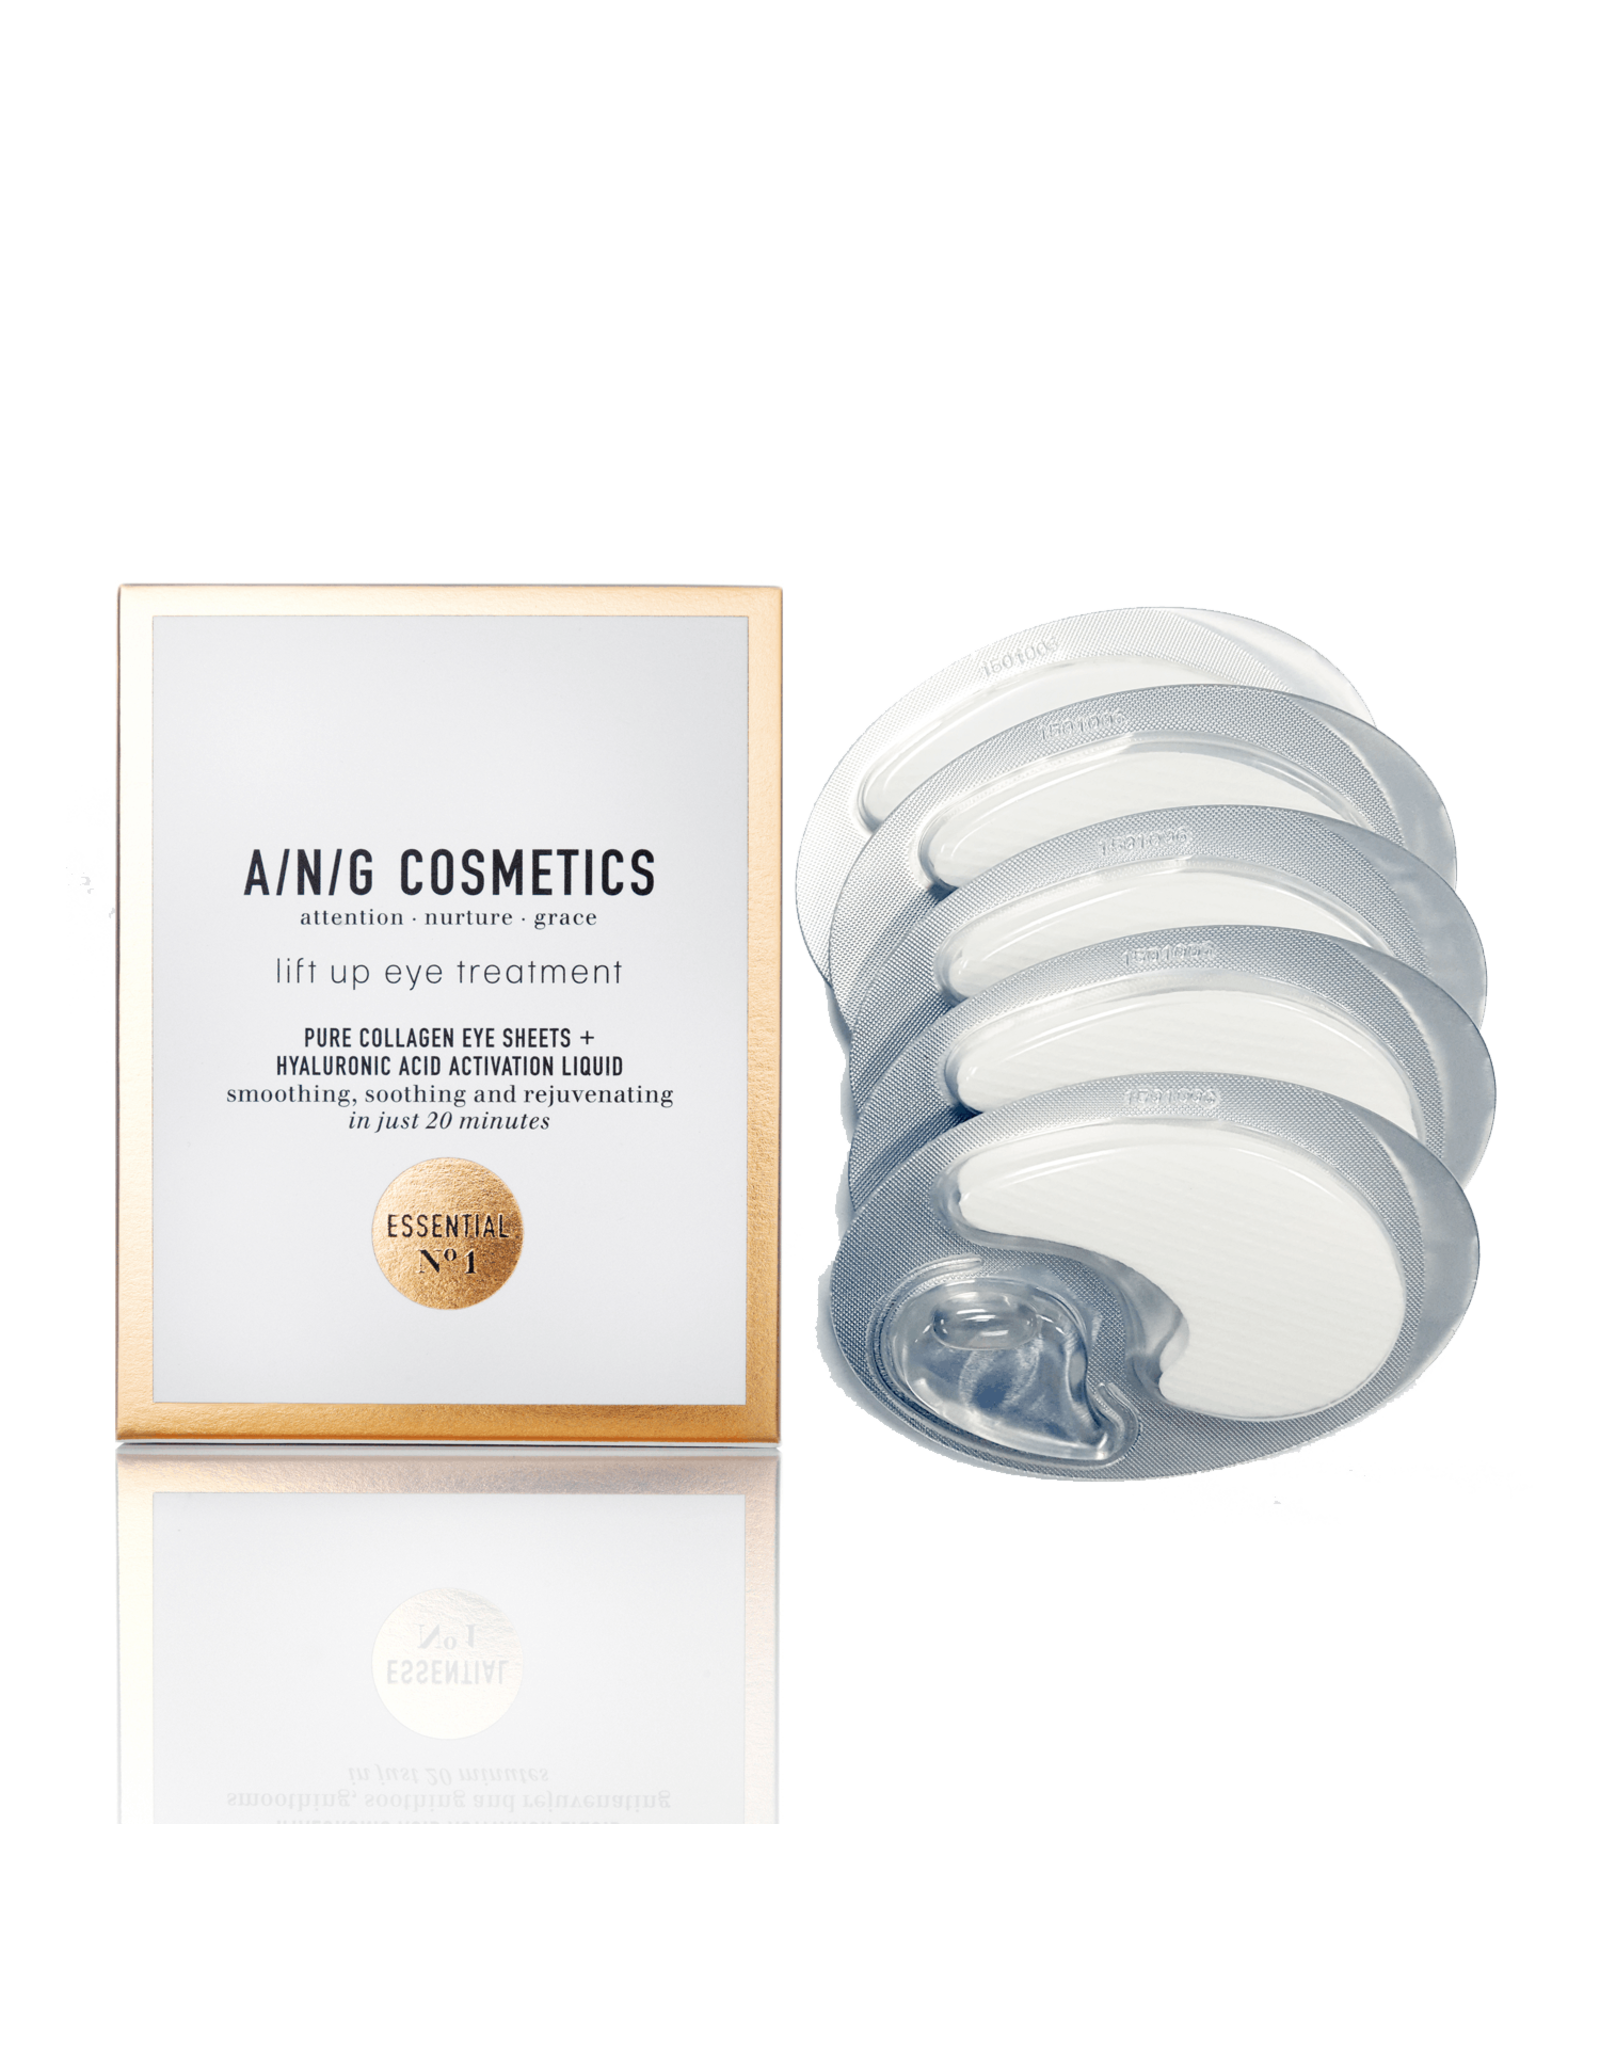 ANG Cosmetics Lift Eye Up Treatment 5 Pairs